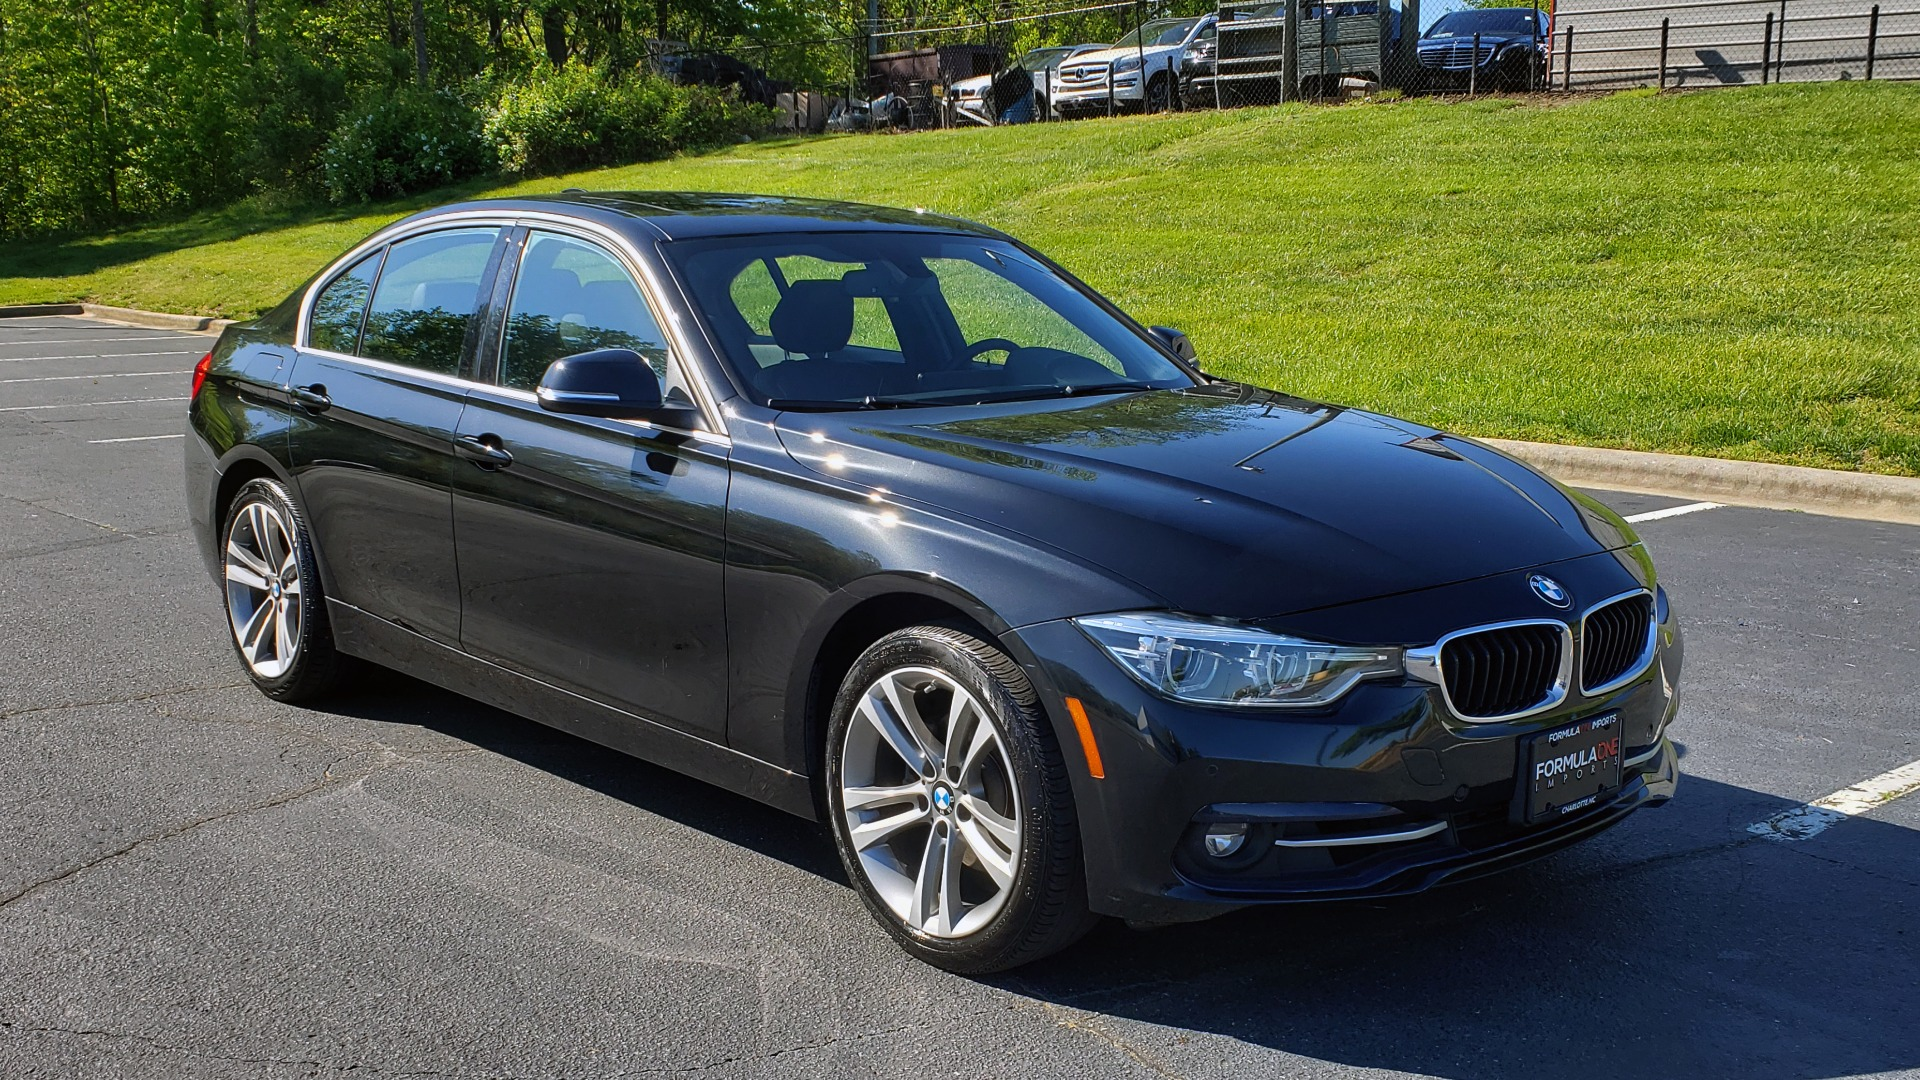 Used 2017 BMW 3 SERIES 330I XDRIVE / PREMIUM / NAV / DRVR ASST / CLD WTHR / REARVIEW for sale Sold at Formula Imports in Charlotte NC 28227 4